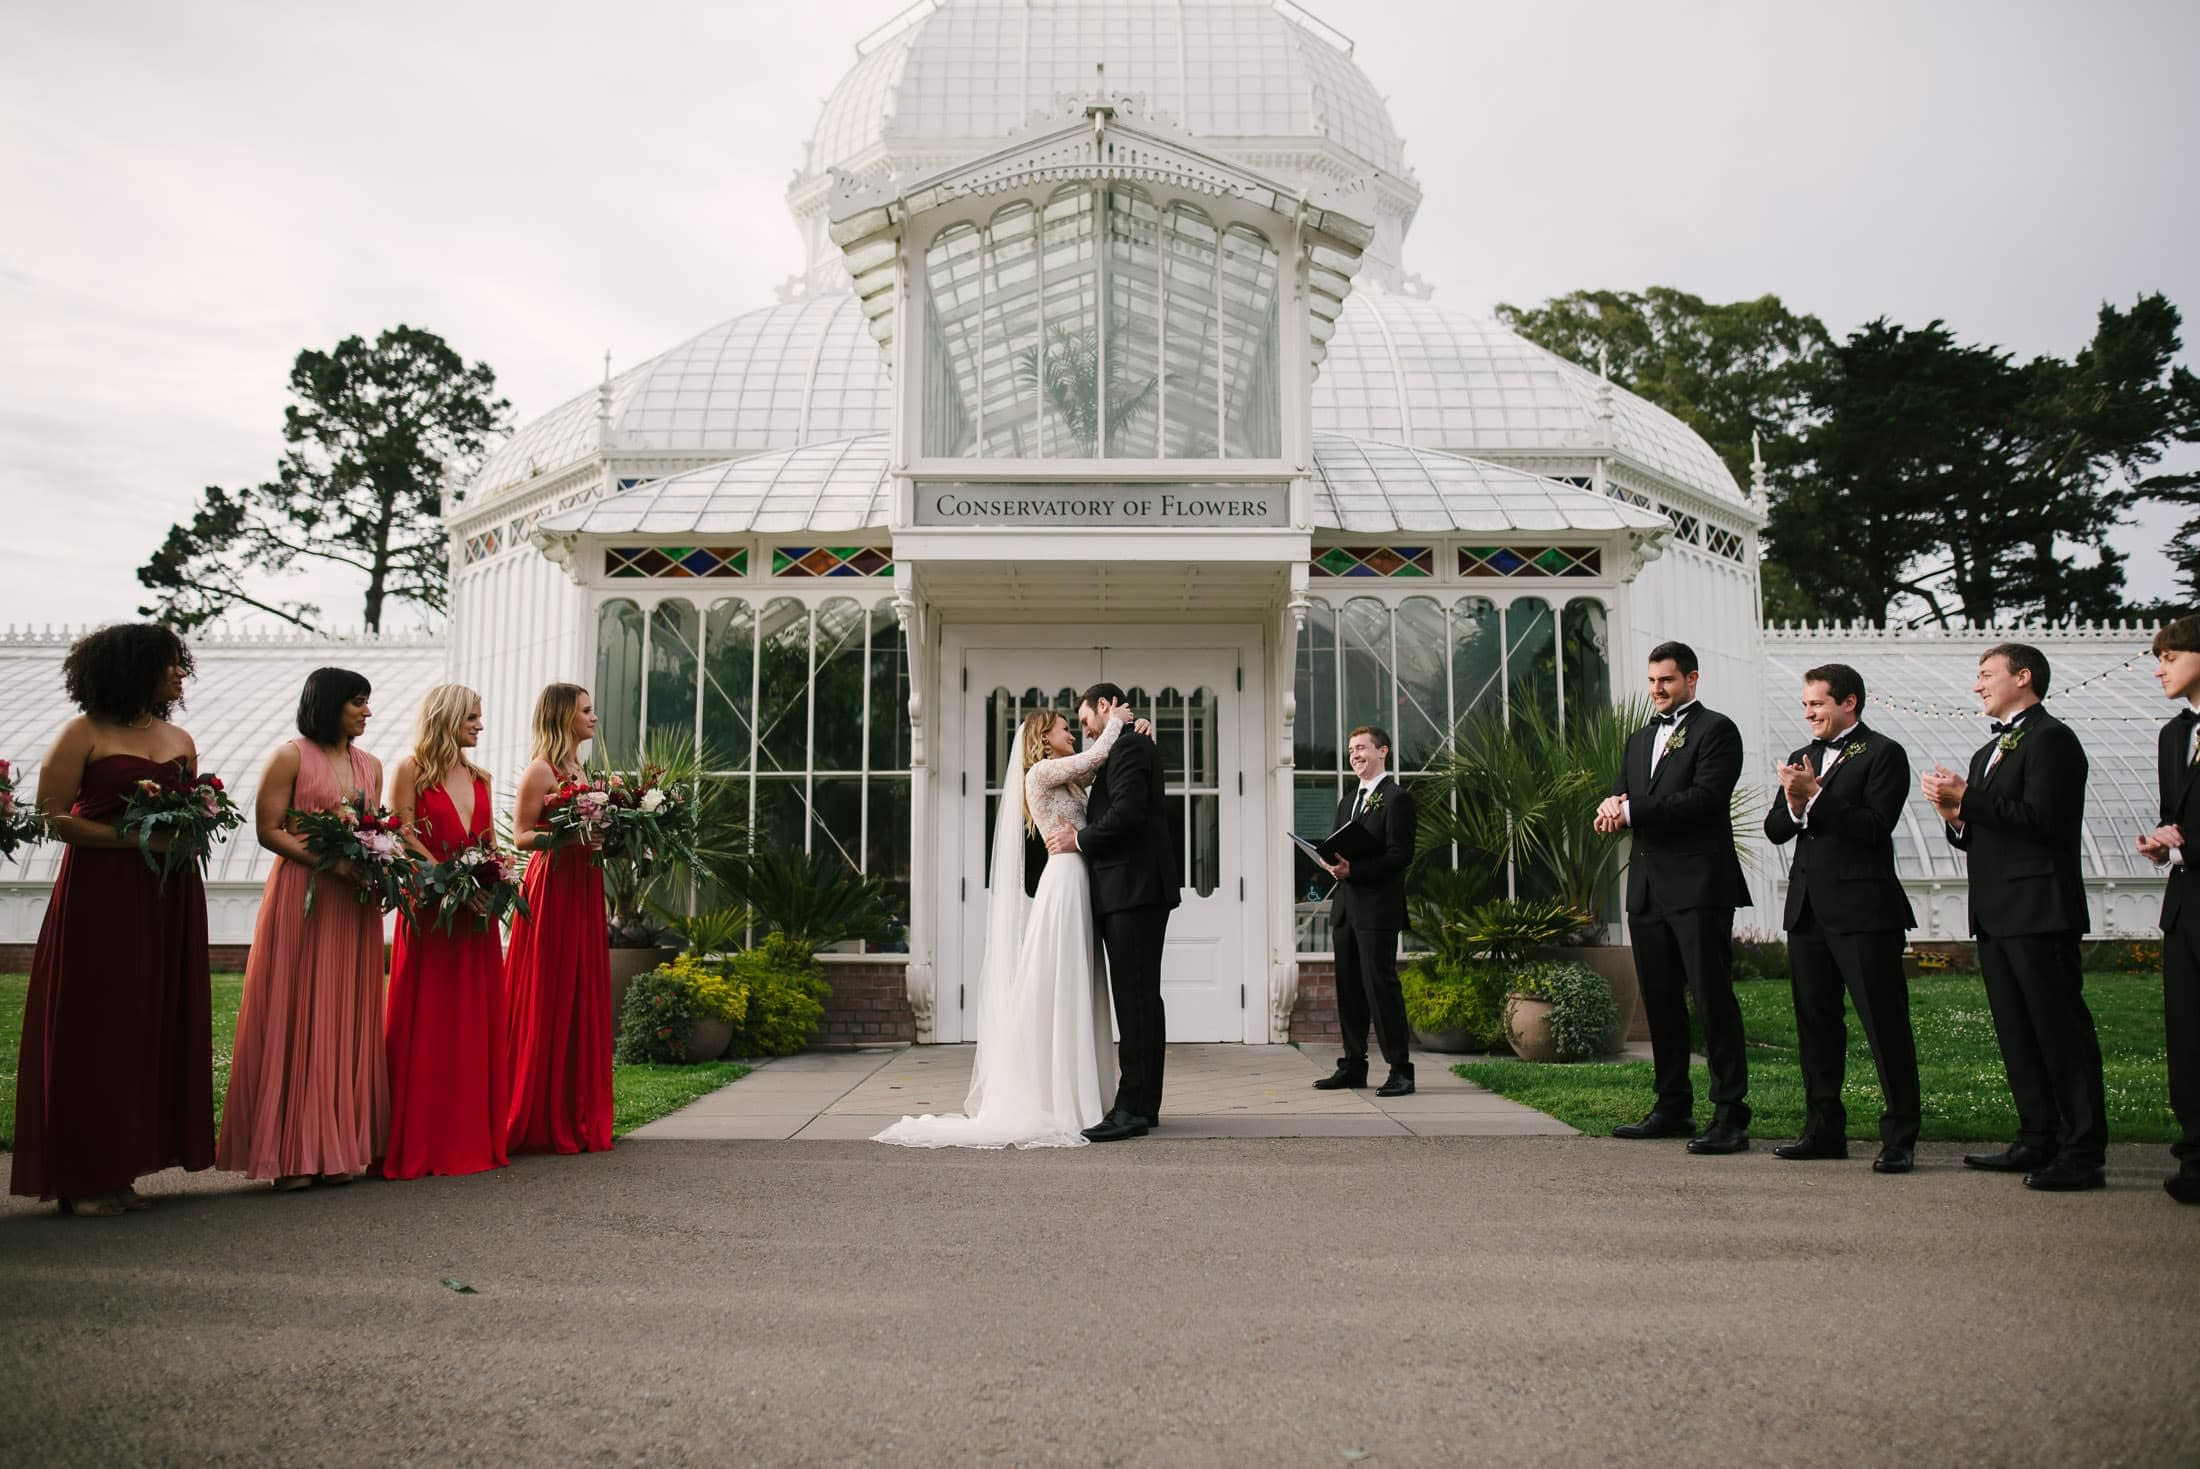 Conservatory of Flowers Wedding Ceremony